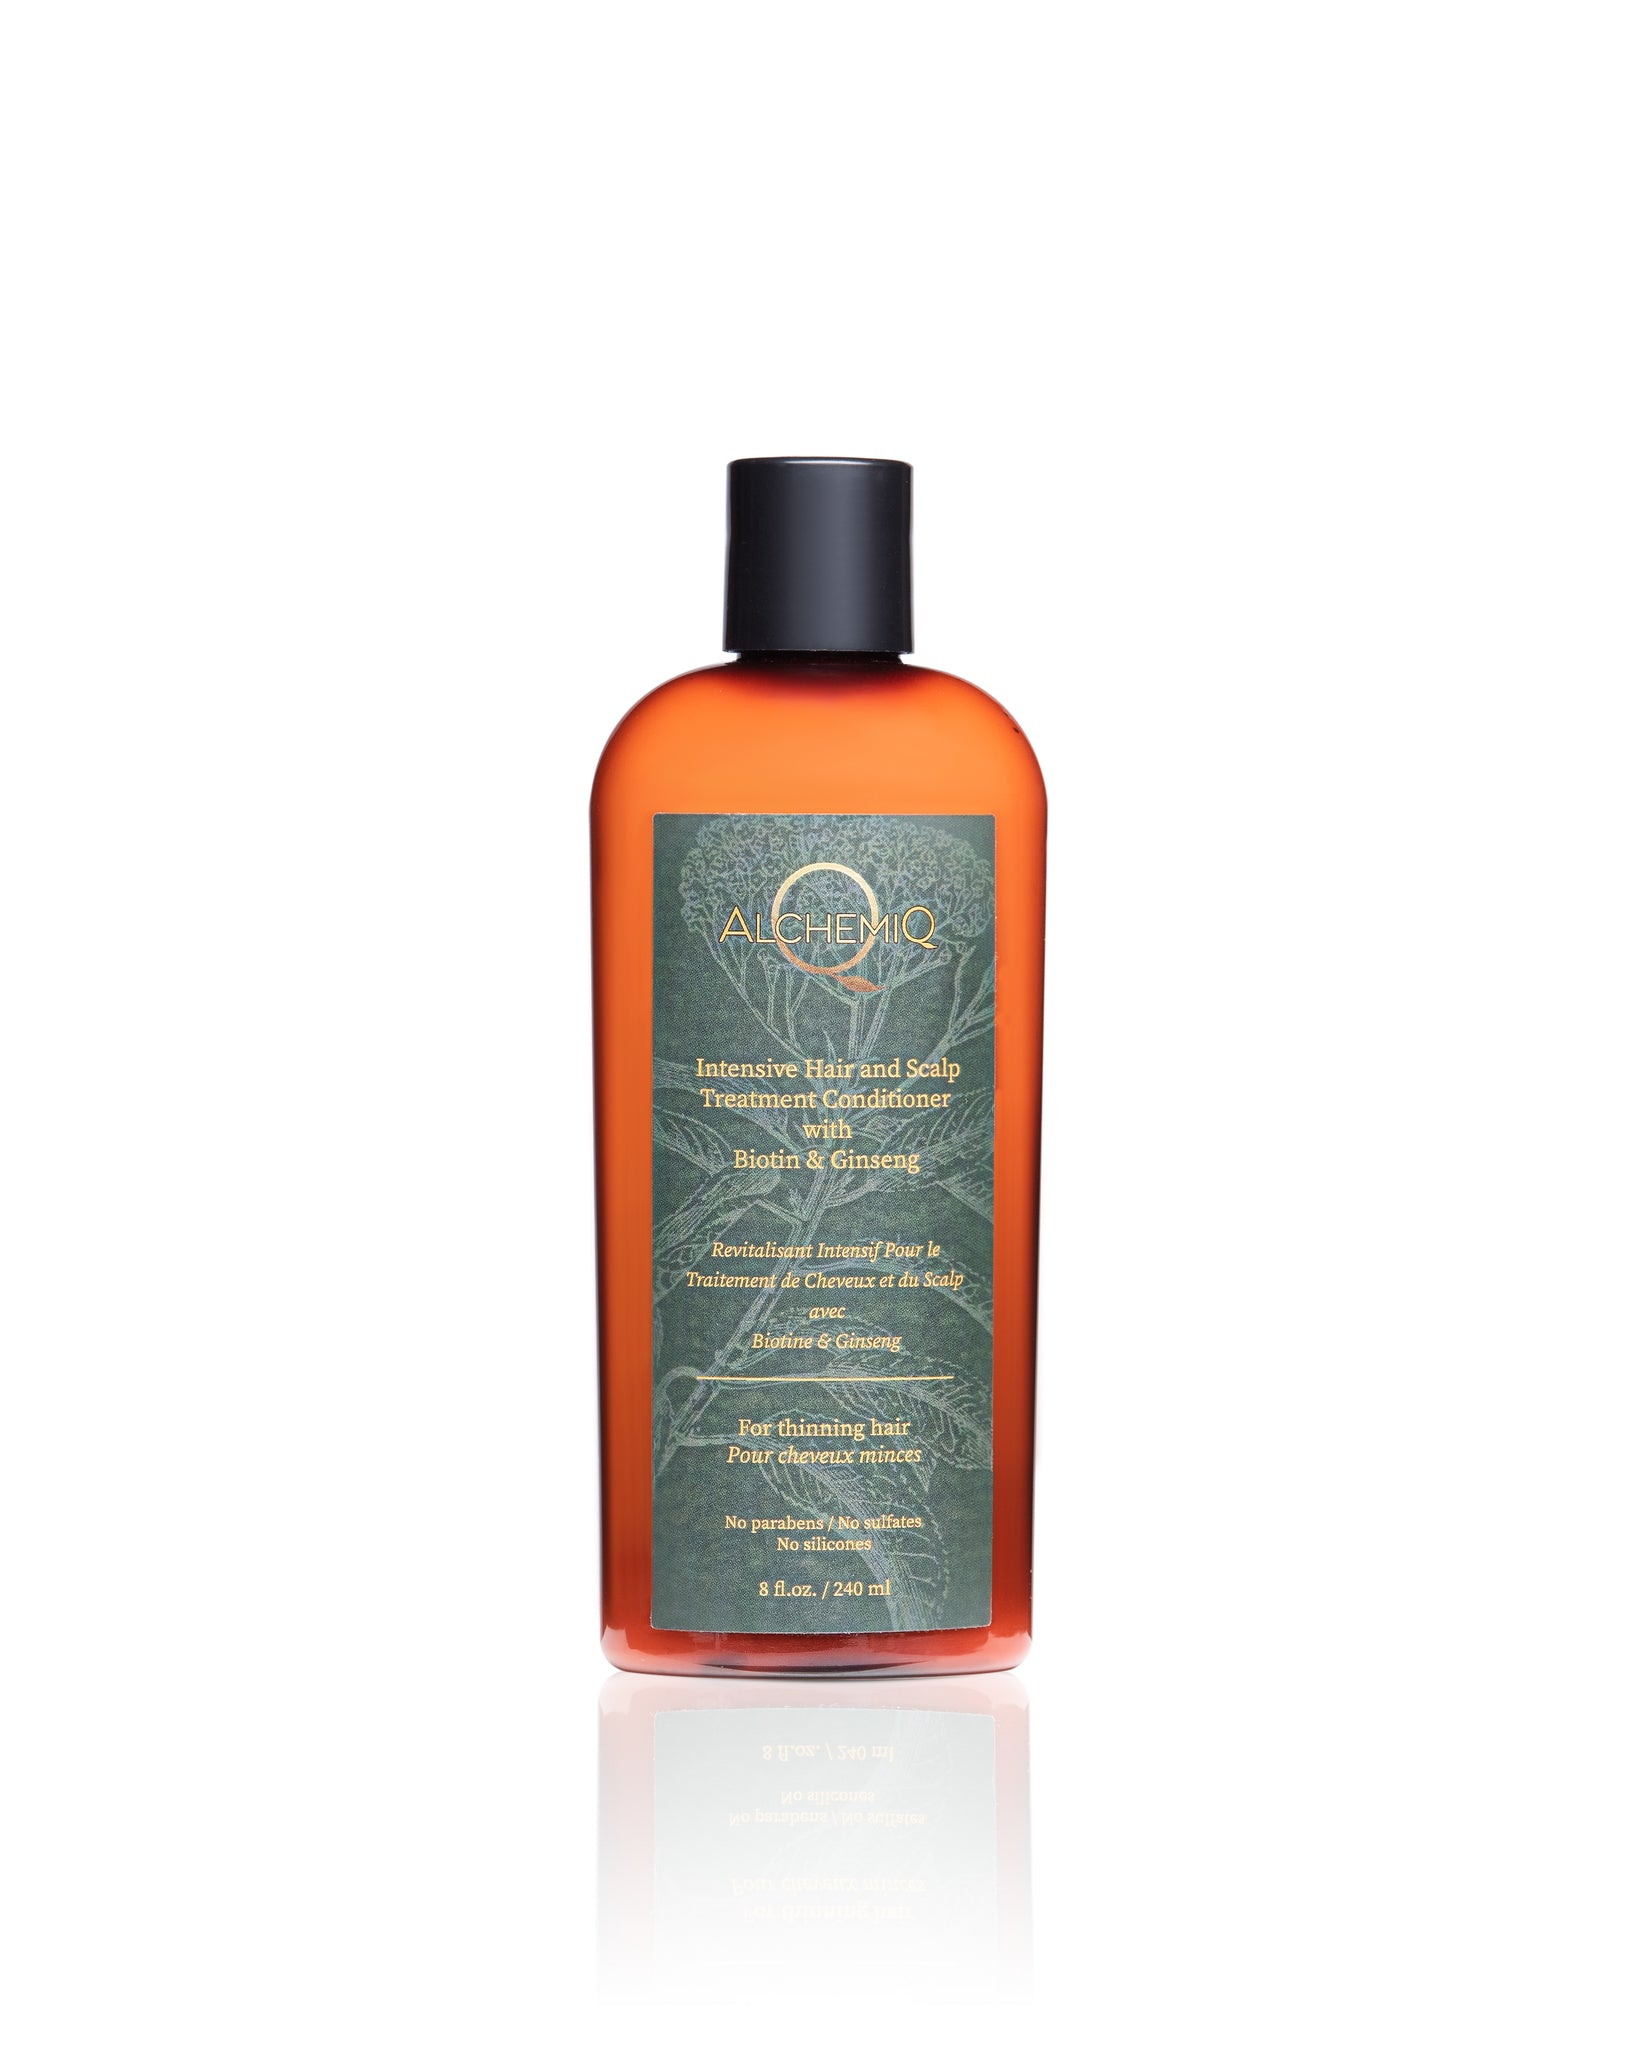 INTENSIVE HAIR & SCALP TREATMENT CONDITIONER